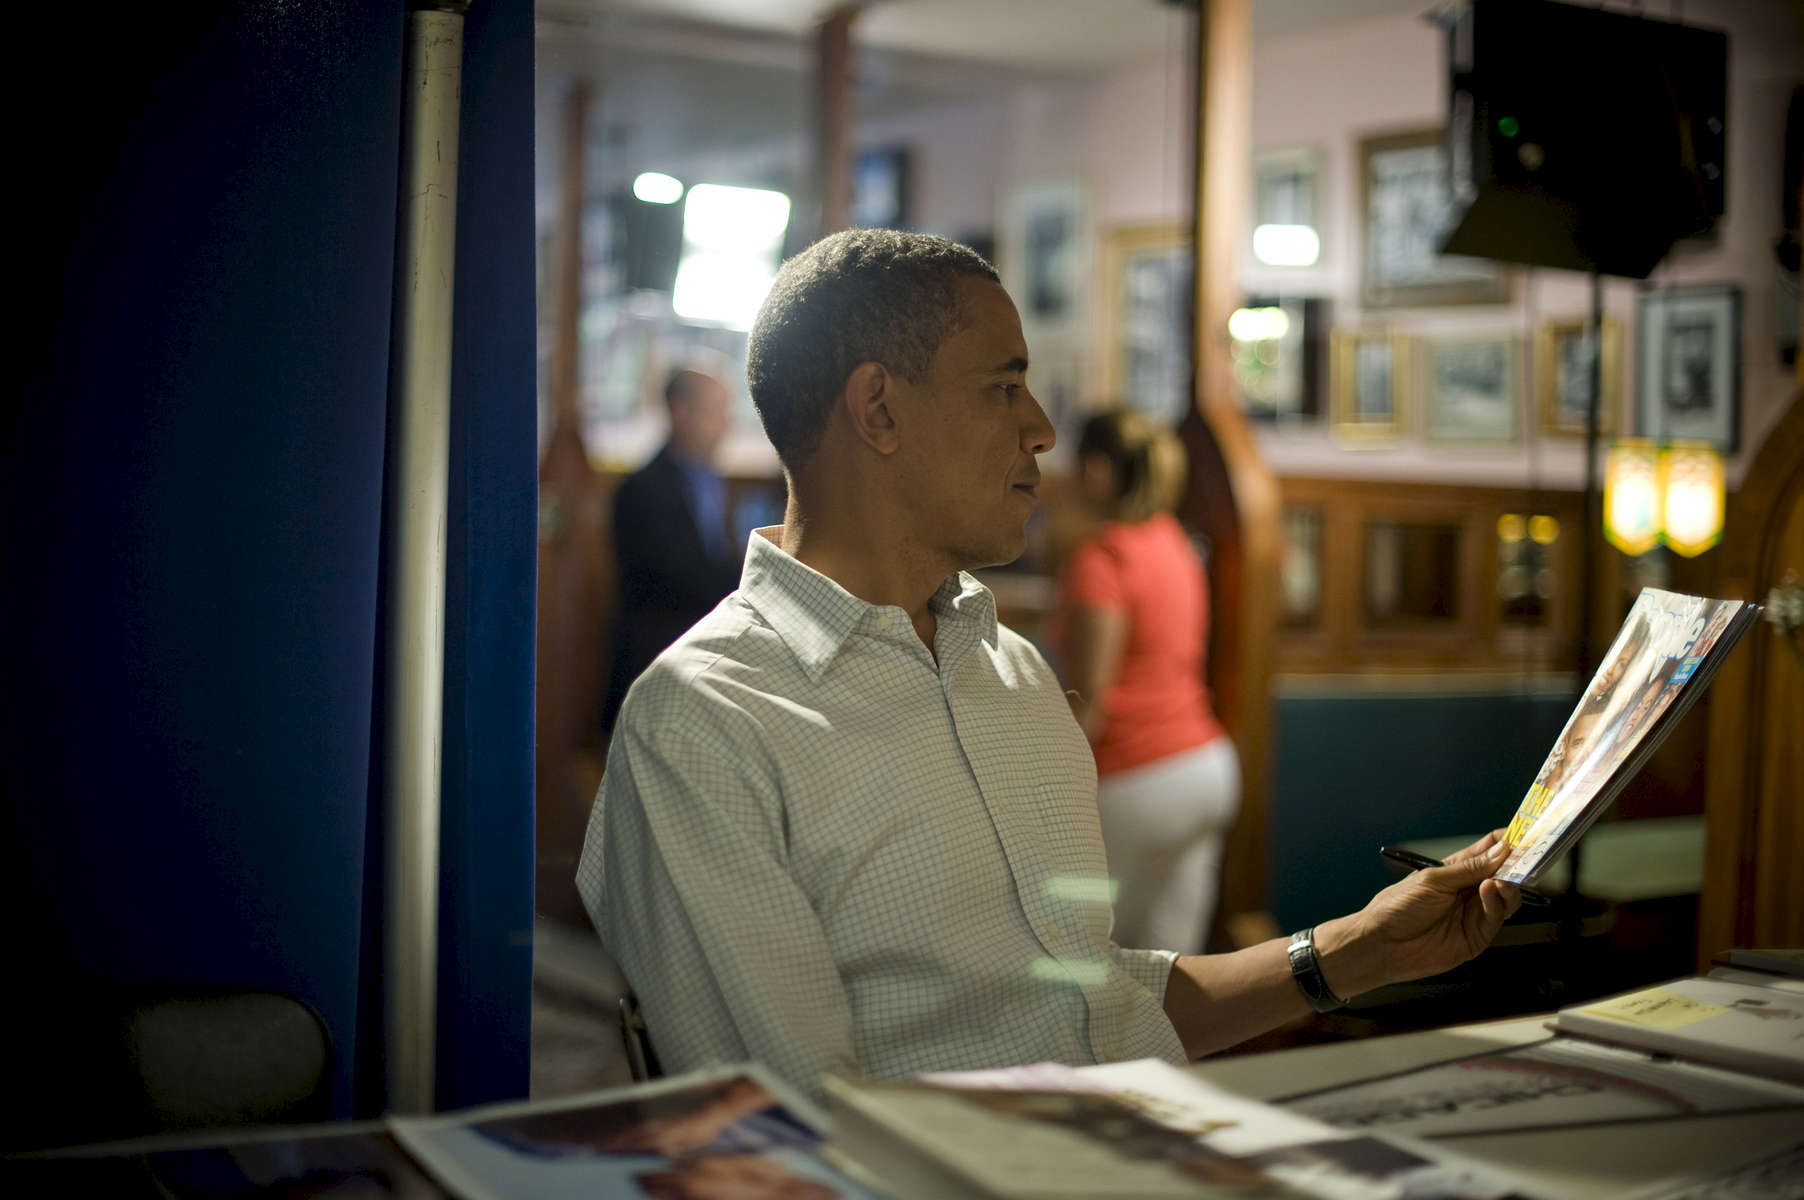 August 15, 2012- DAVENPORT, IA: President Barack Obama looks nostalgic as he signs a copy of a magazine with pictures of his daughters when they were much younger on the cover backstage at Logomarcino's Ice Cream Shoppe in Davenport, Iowa. (Scout Tufankjian for Obama for America/Polaris)